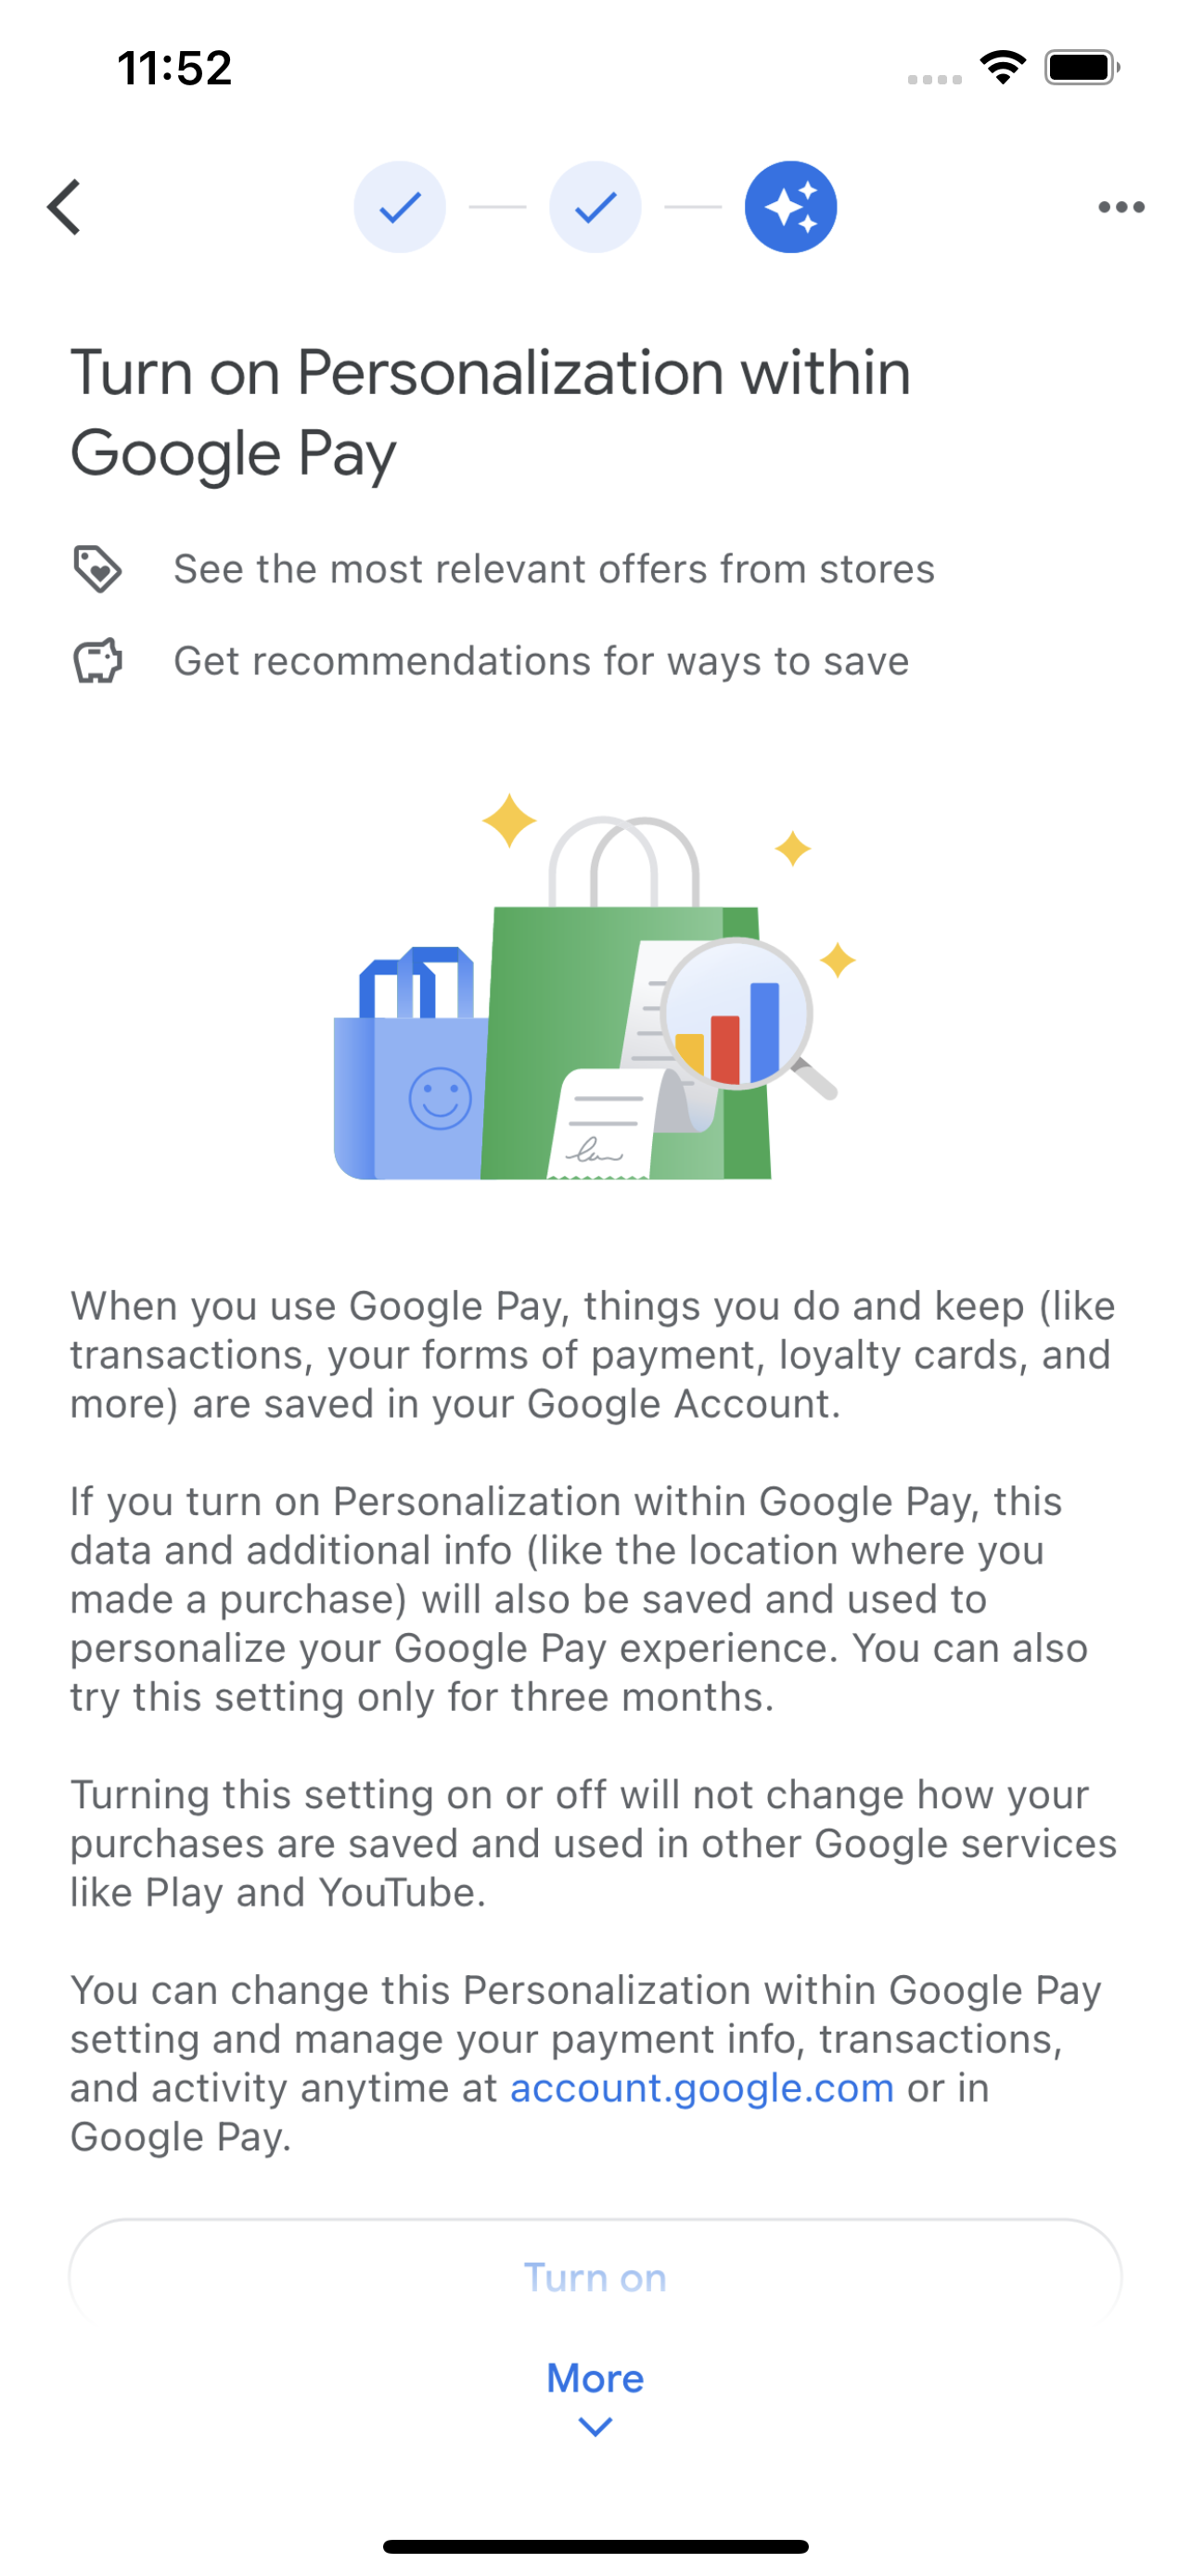 Google Pay: What opting into personalized offers can really mean for your privacy and finances